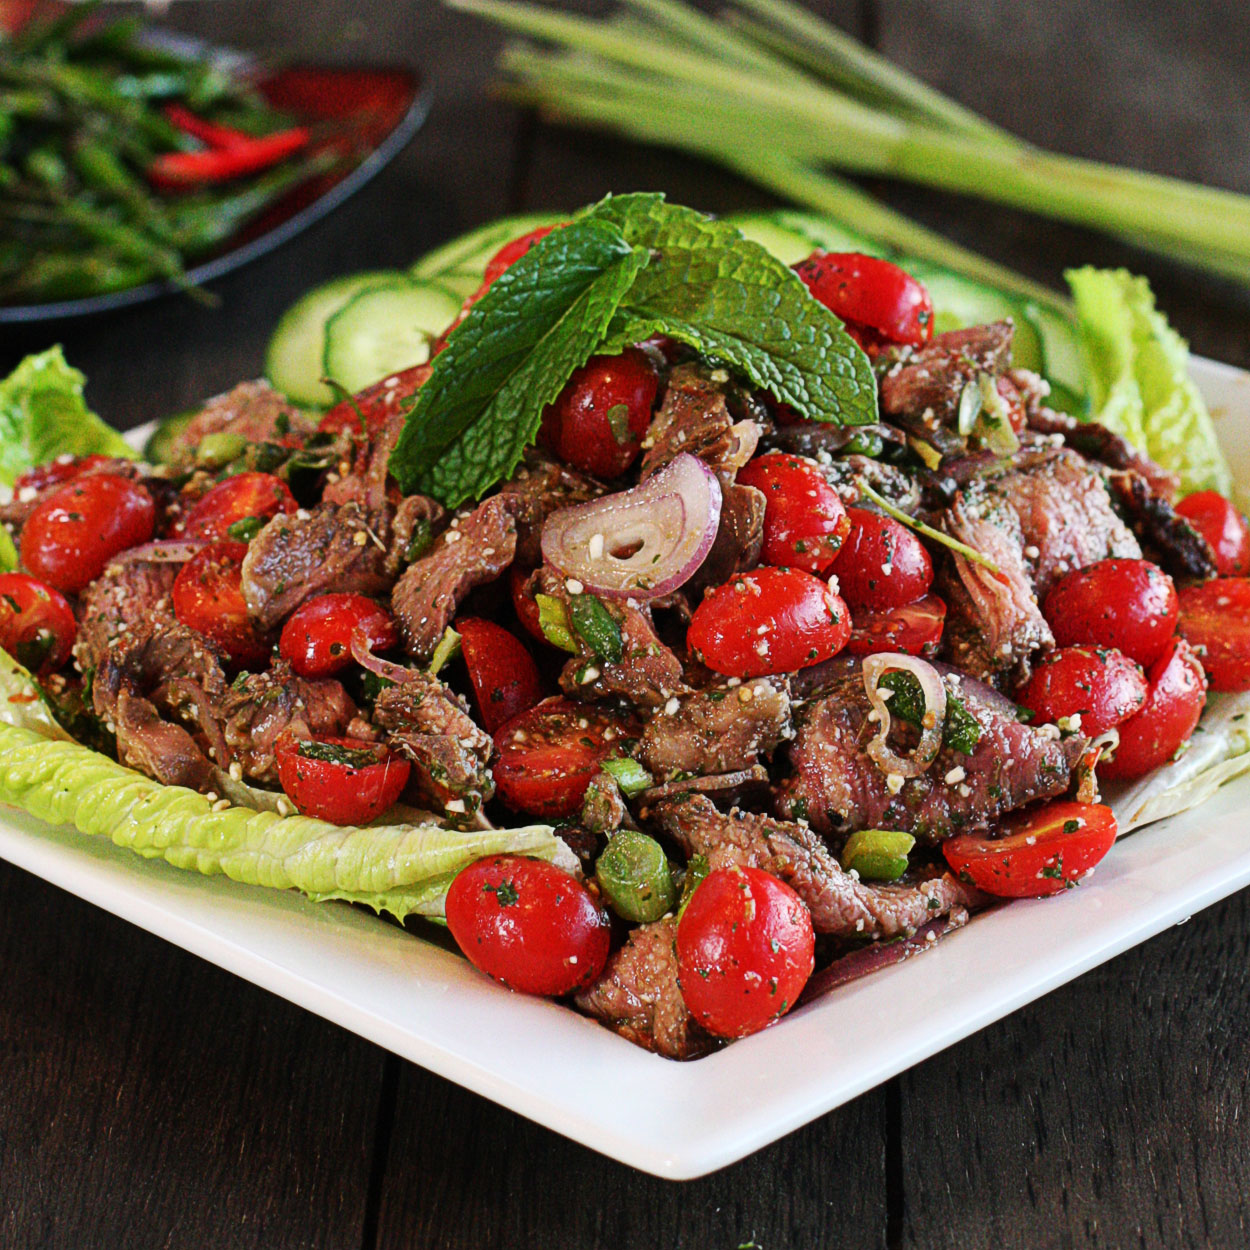 Thai Beef Salad - The Hopeless Housewife® - The Hopeless Housewife®